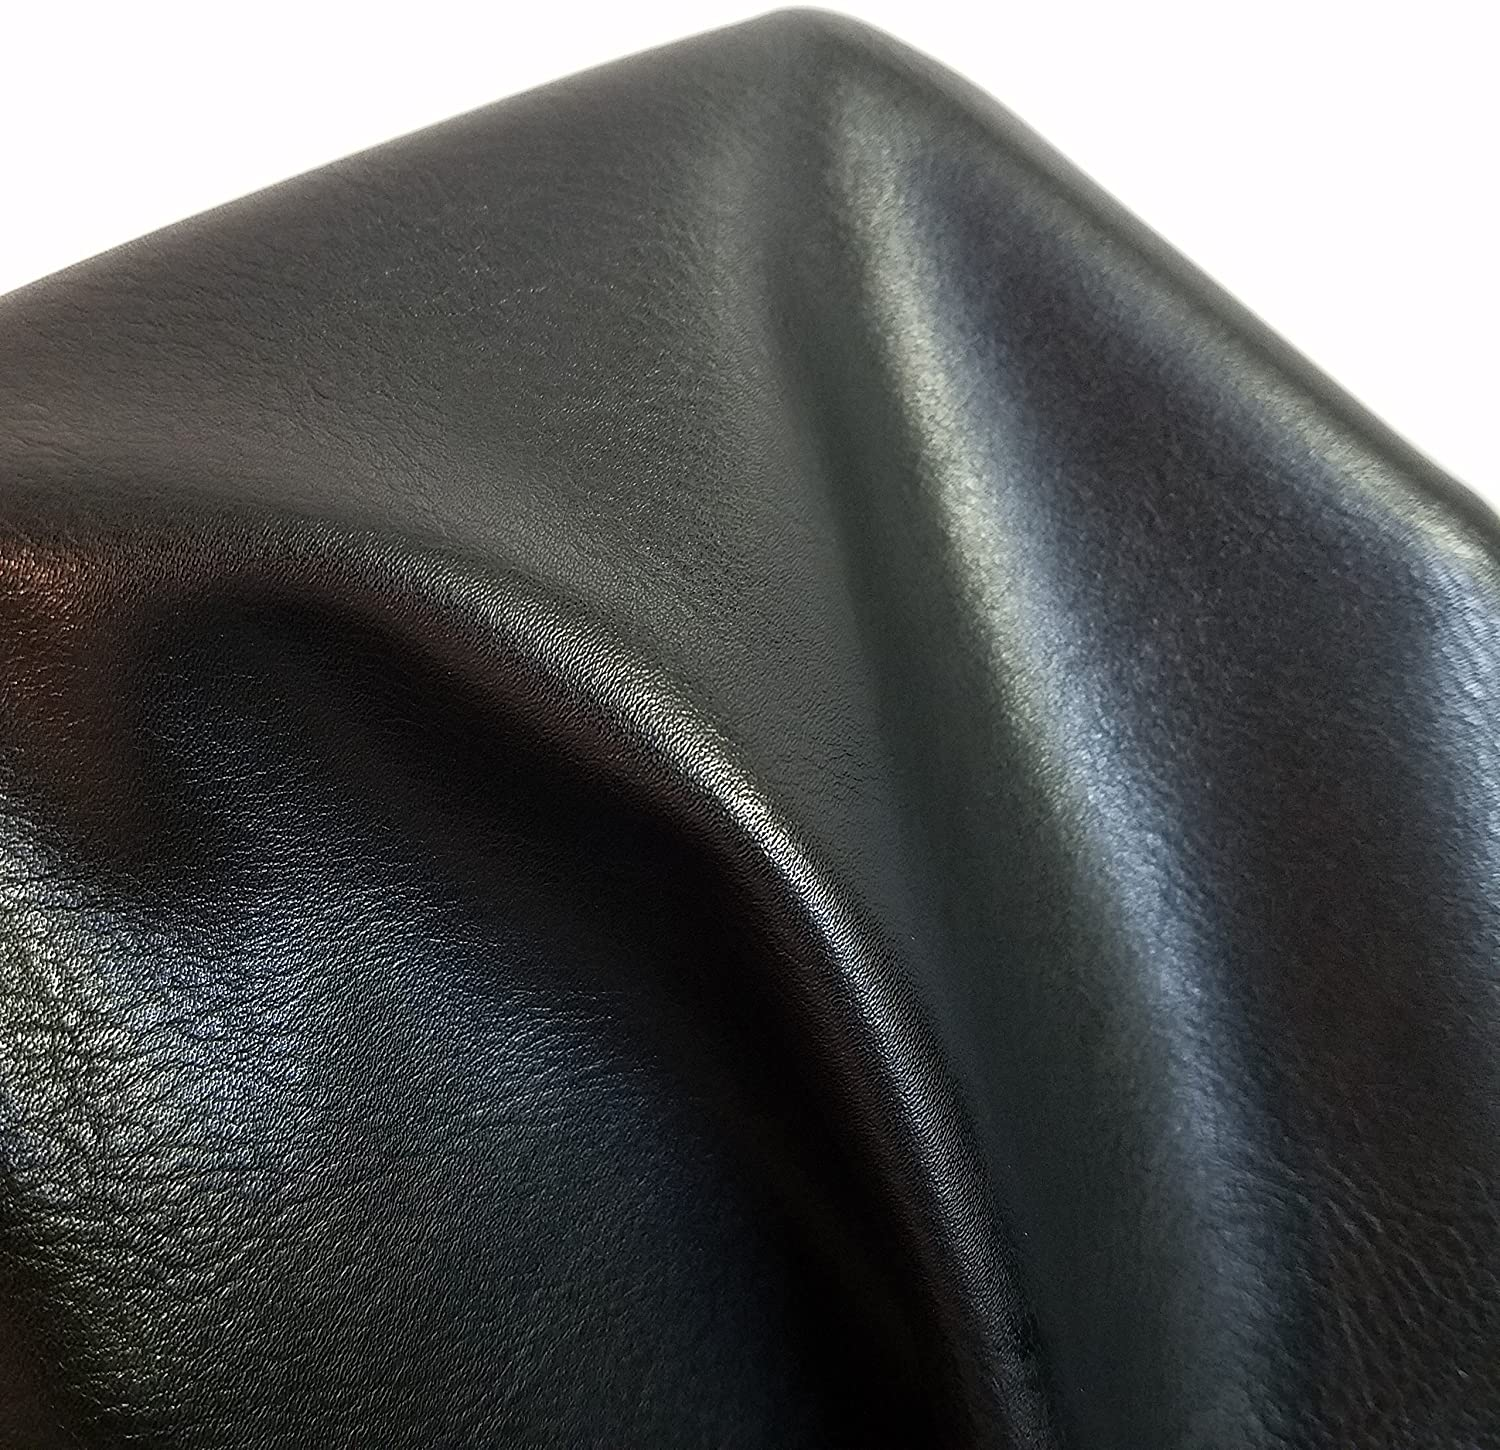 NAT Leathers | Black Soft Faux Vegan Leather PU {Peta Approved Vegan} | 1 yard (36 inch Length x 54 inch wide) cut by the yard | Synthetic Pleather 0.9 mm Nappa Smooth Vinyl Upholstery | Black 36